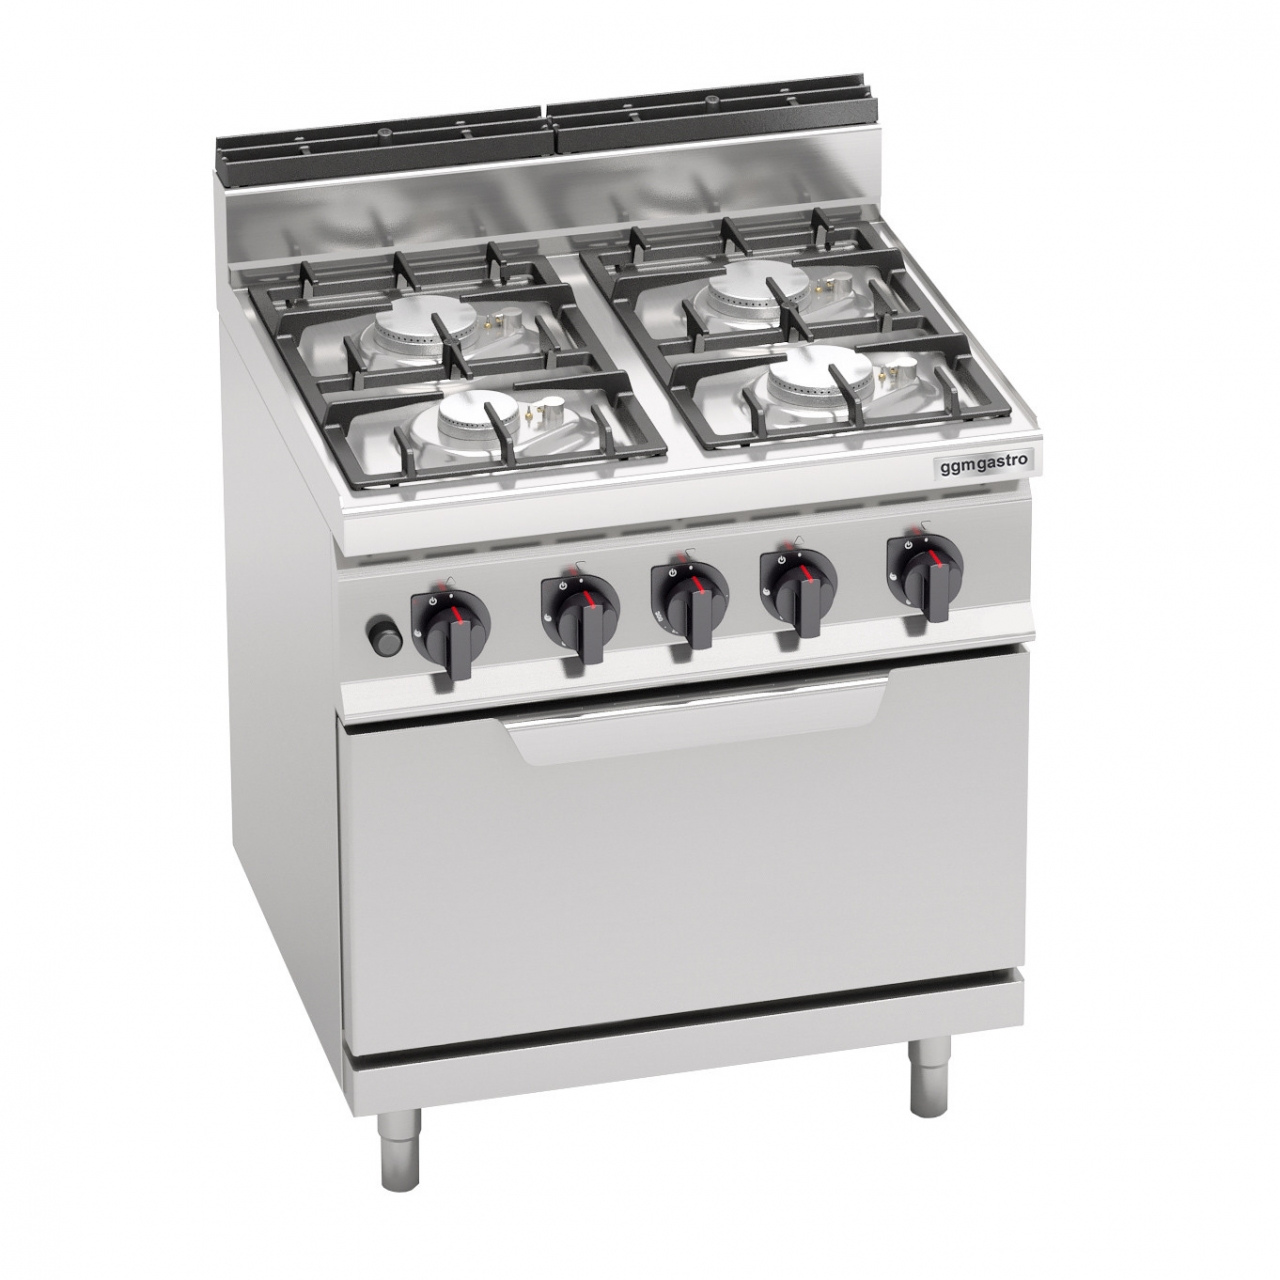 Gas stove 4 burners 21.5kW + Oven 7.8kW